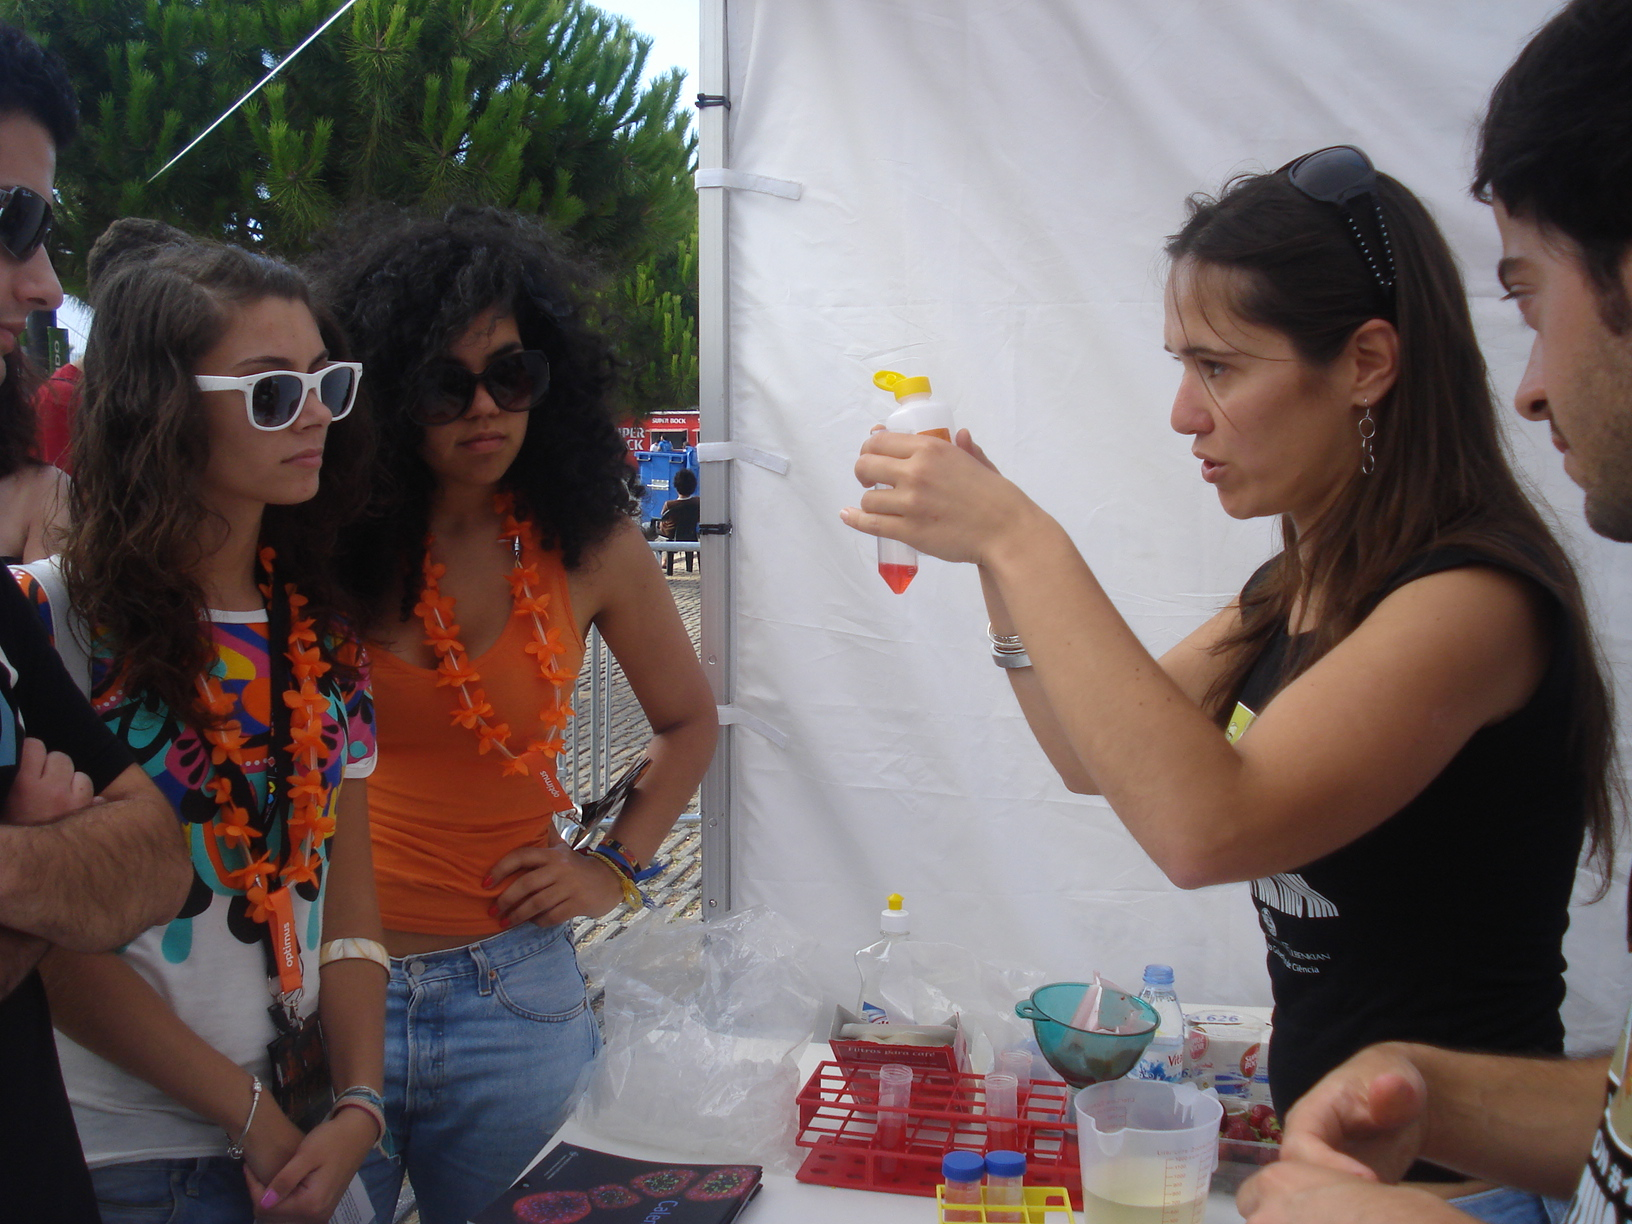 DNA extraction at the IGC stand